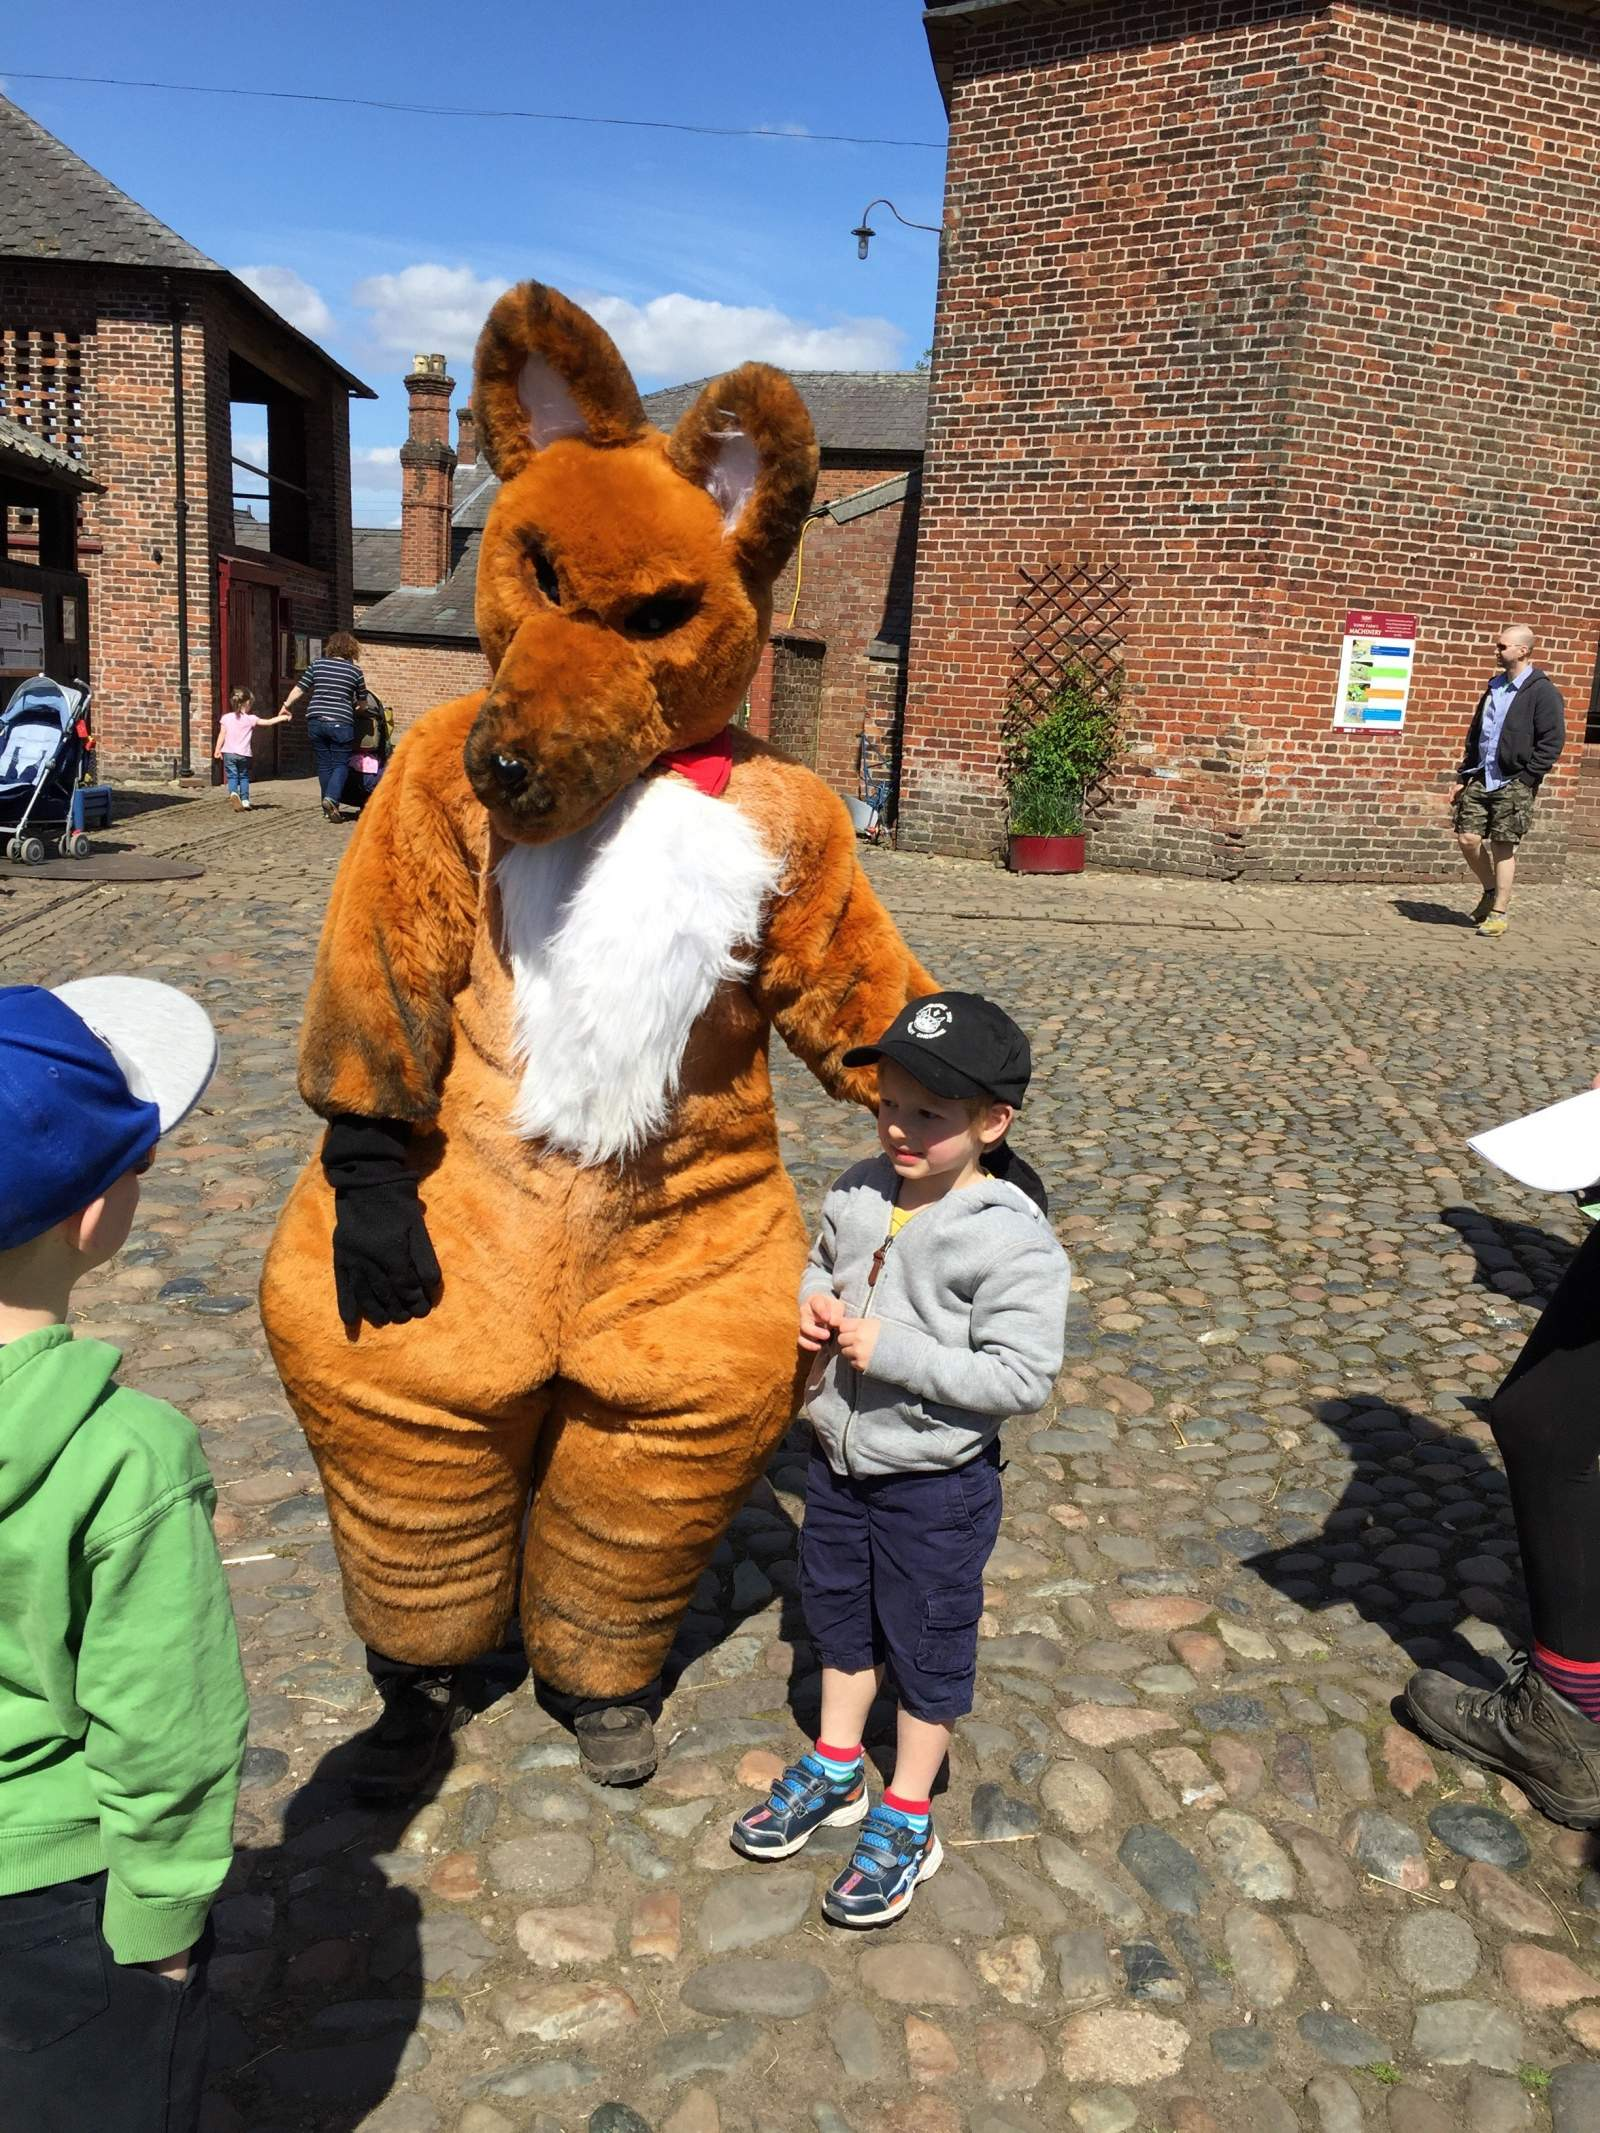 Fantastic mr Fox at Tatton Park as part of their role Dahl Centenary celebrations